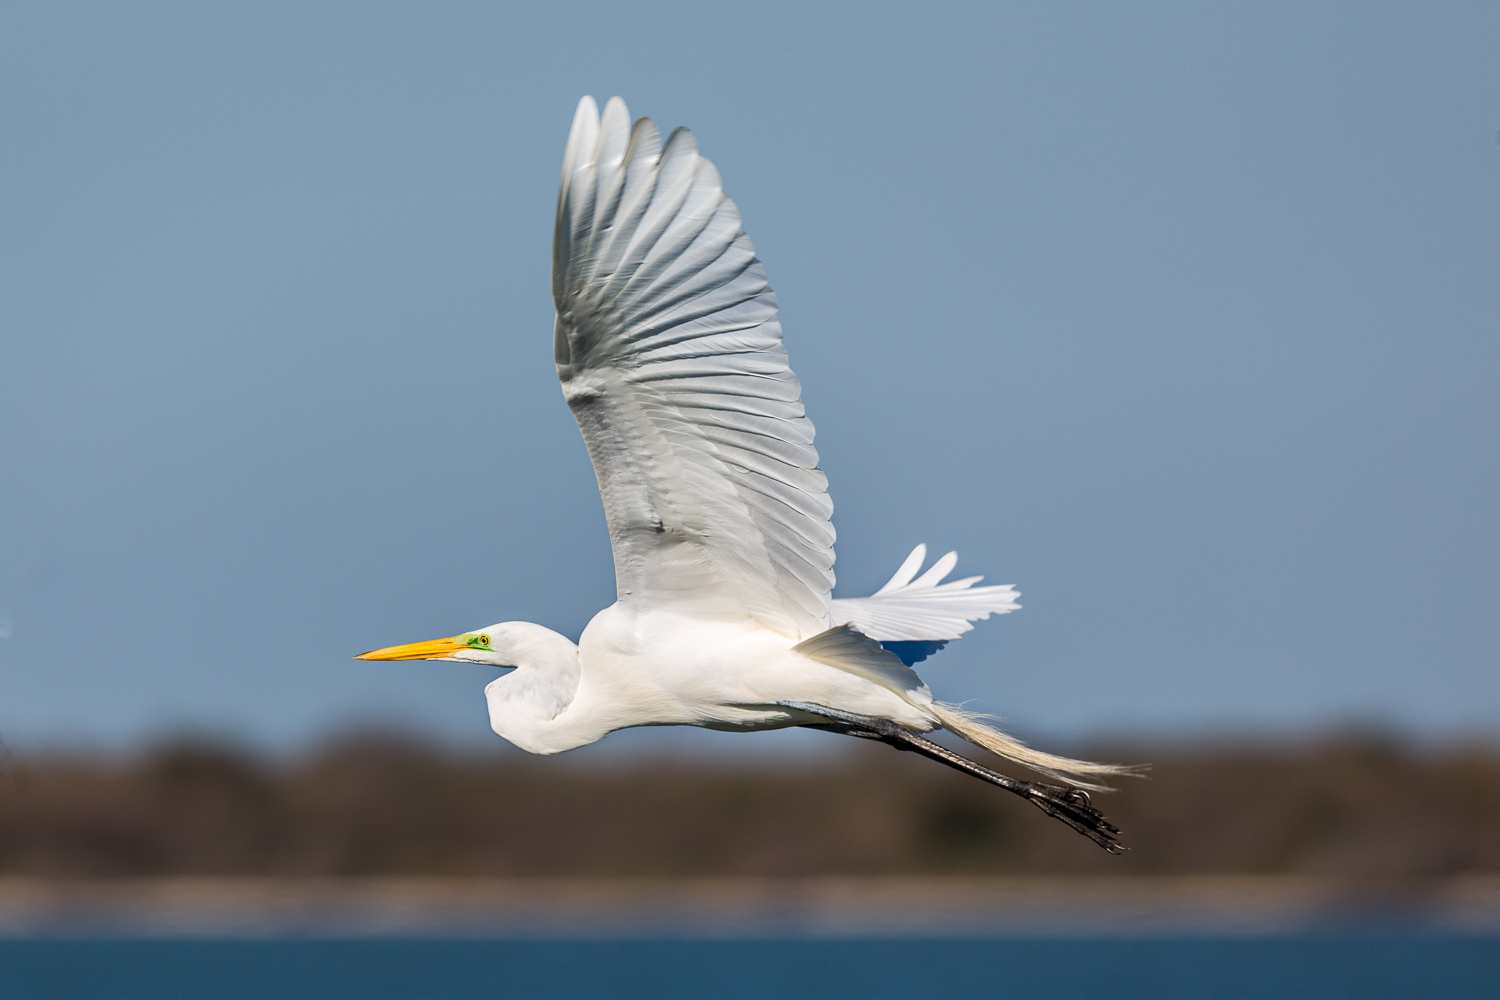 Flying Egret